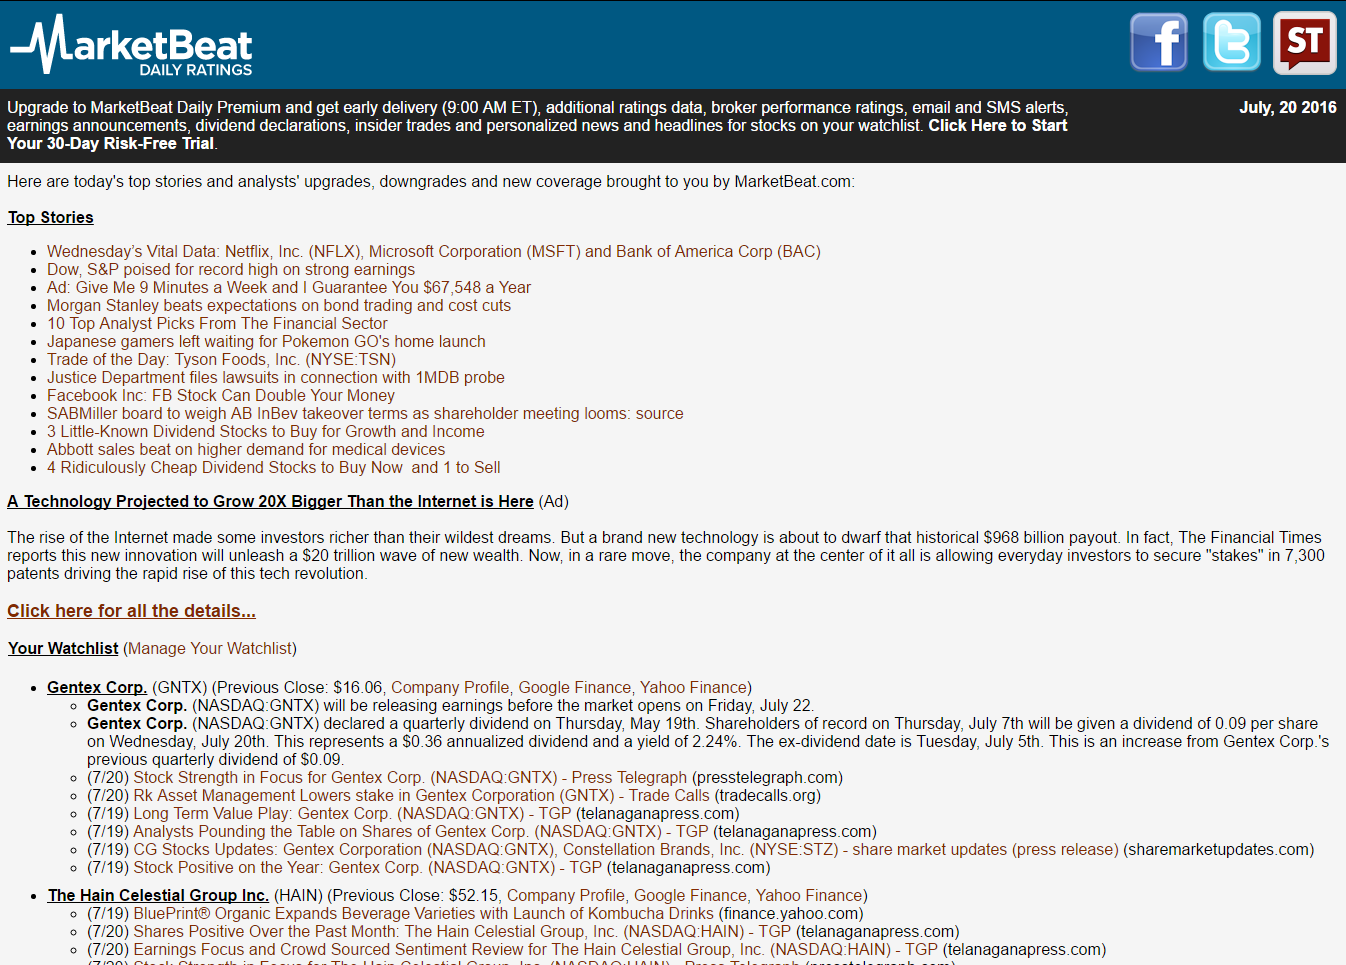 Receive more than 200 research updates daily by subscribing to MarketBeat Daily Ratings using the form below.